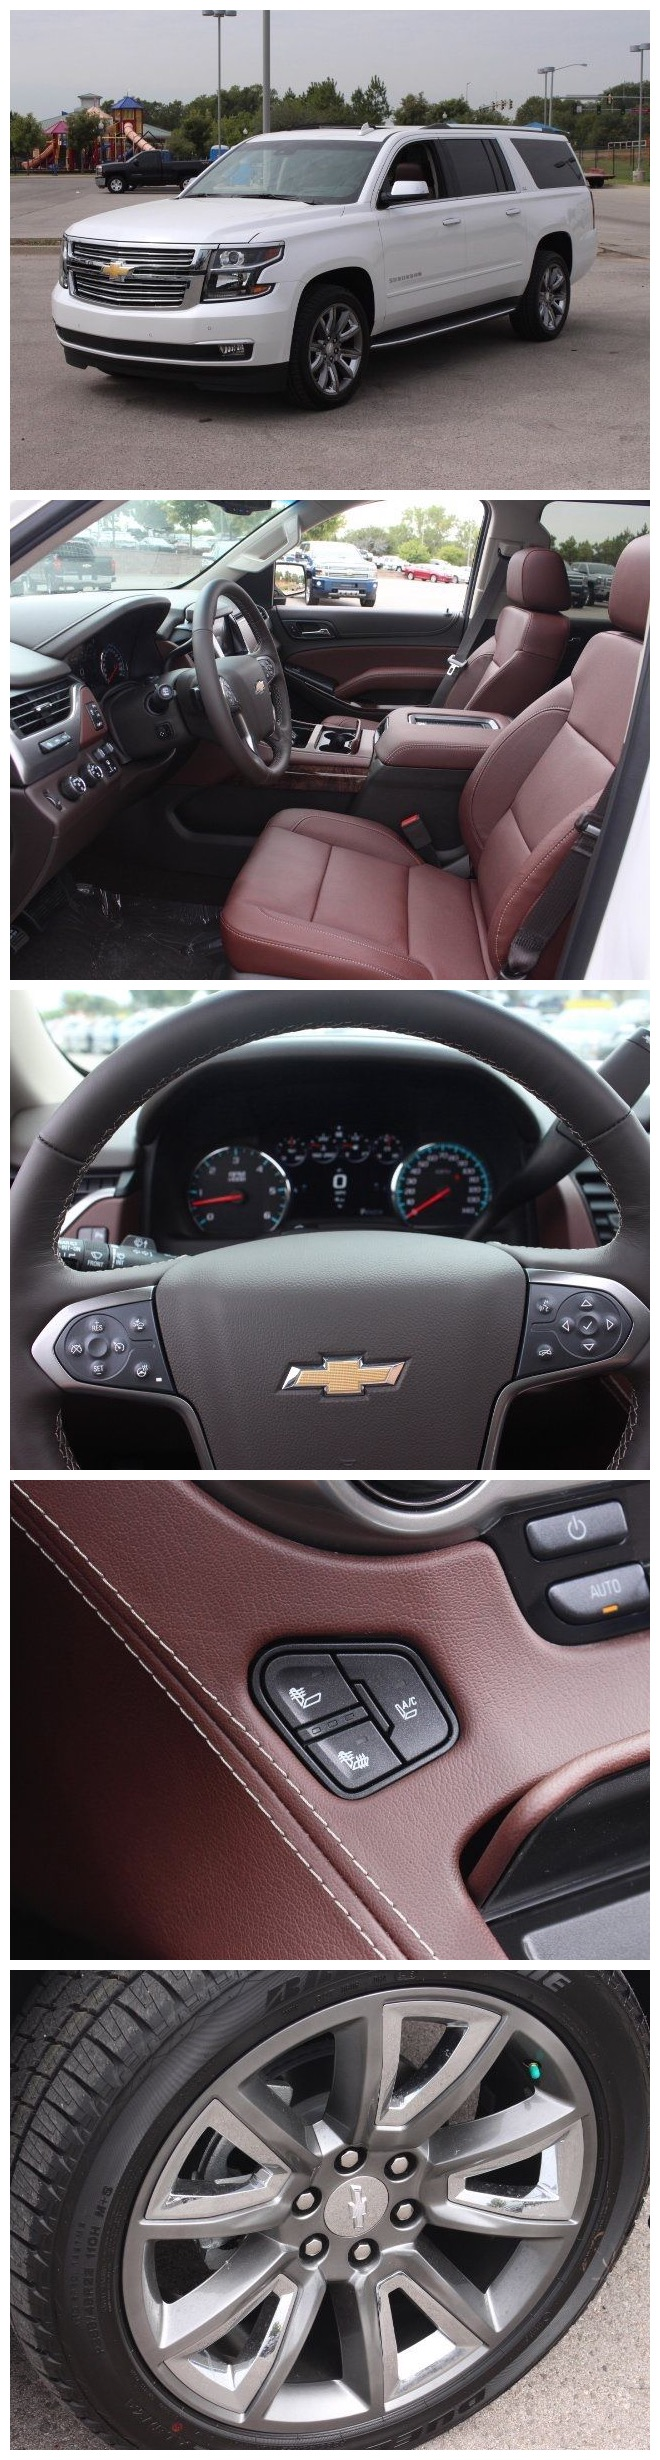 2016 chevrolet suburban ltz our tahoes and suburbans pinterest 2016 chevrolet suburban ltz fandeluxe Gallery